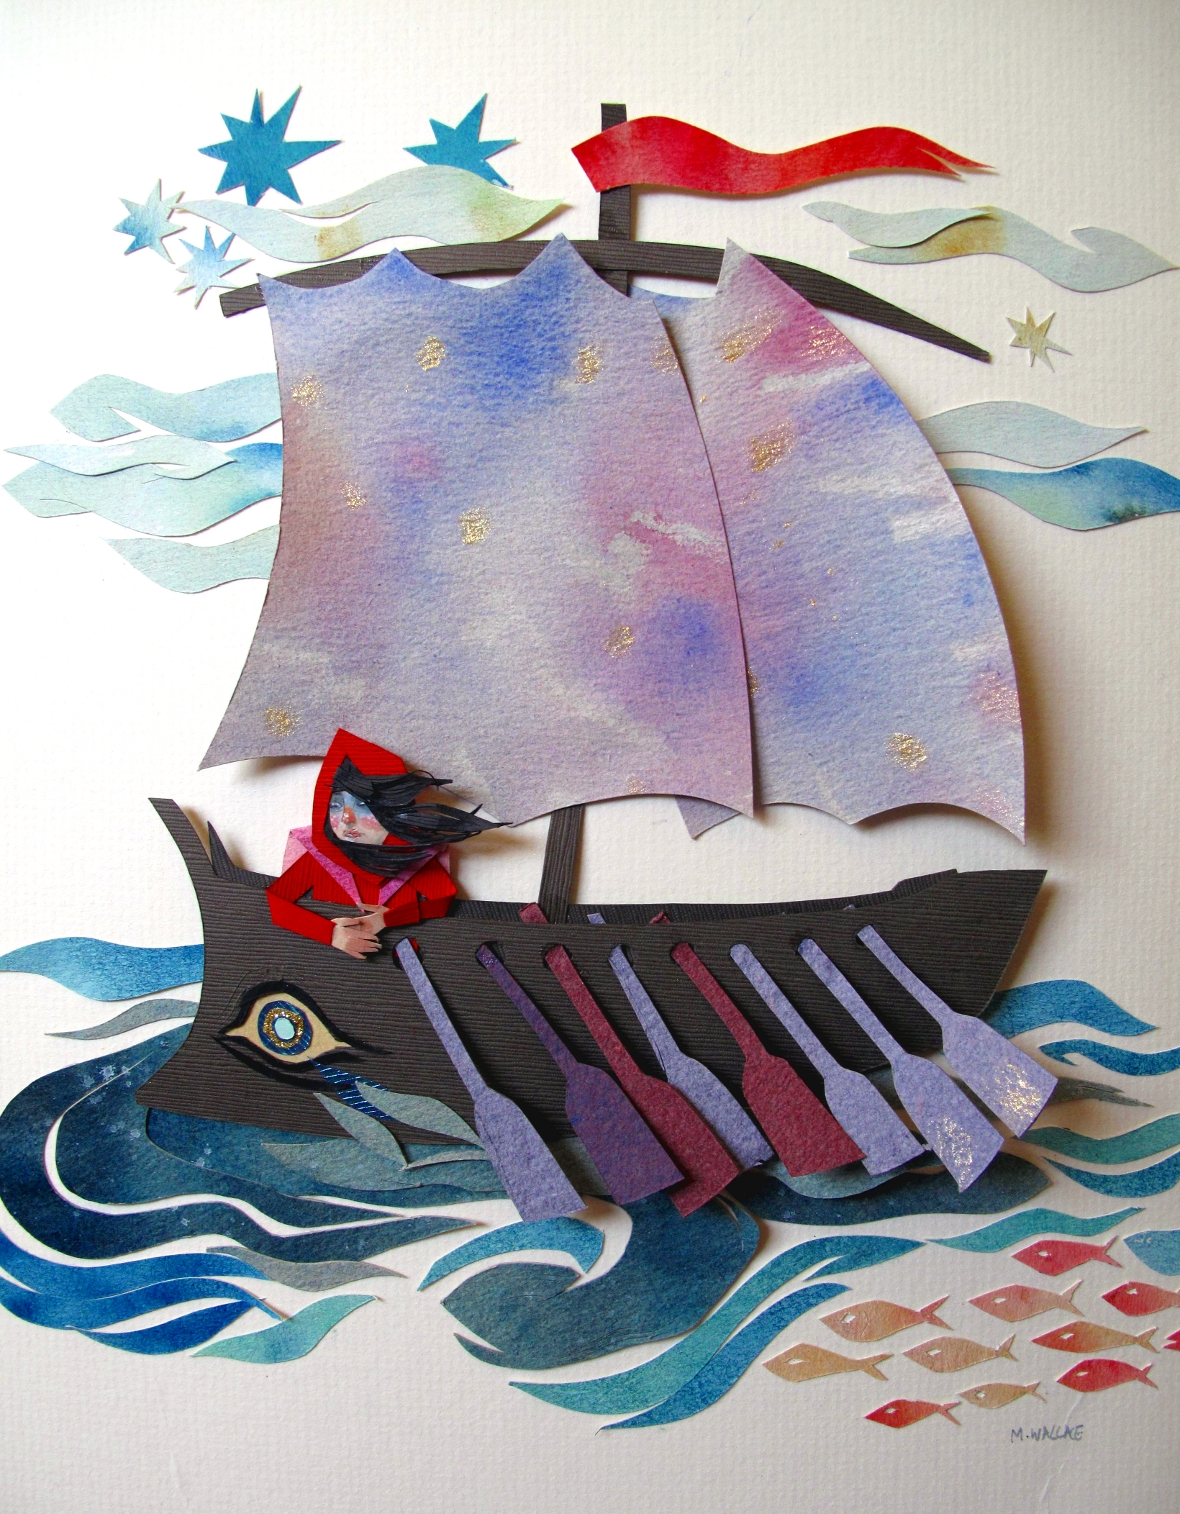 morgana cut paper mytho 8